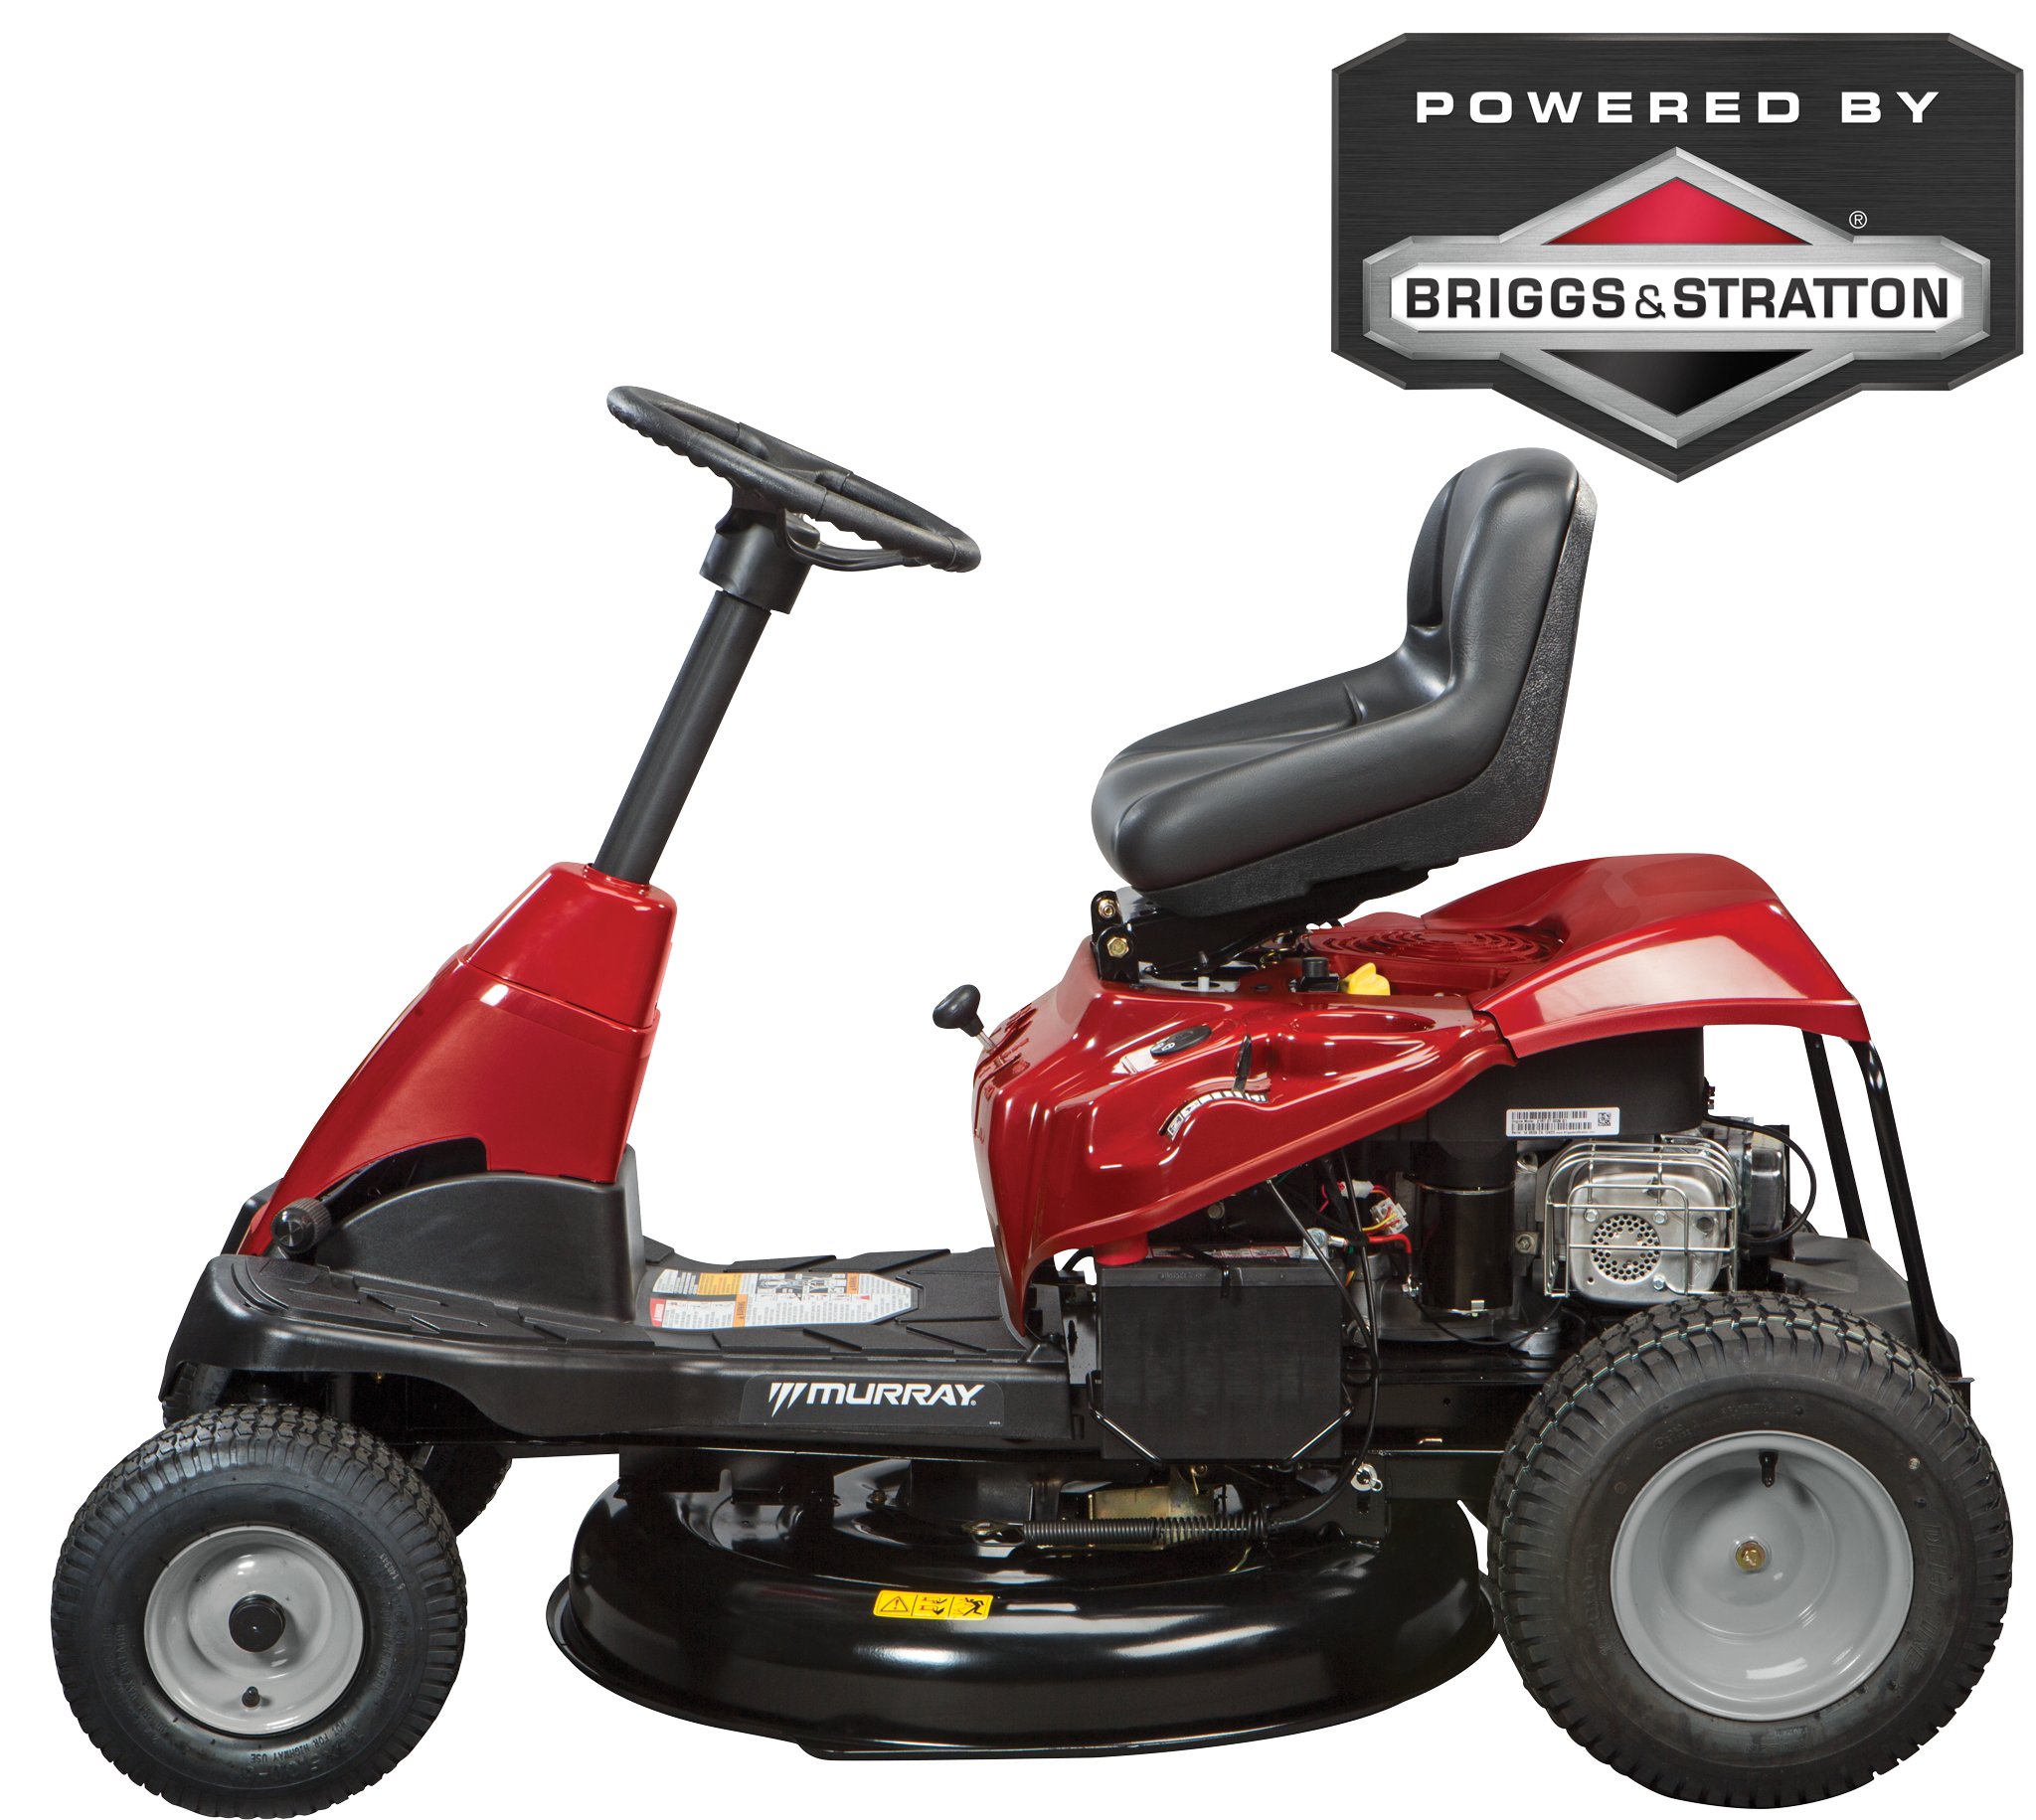 Murray 30 105 Hp Rear Engine Riding Mower Need A Diagram To Replace The Belt On Lawn